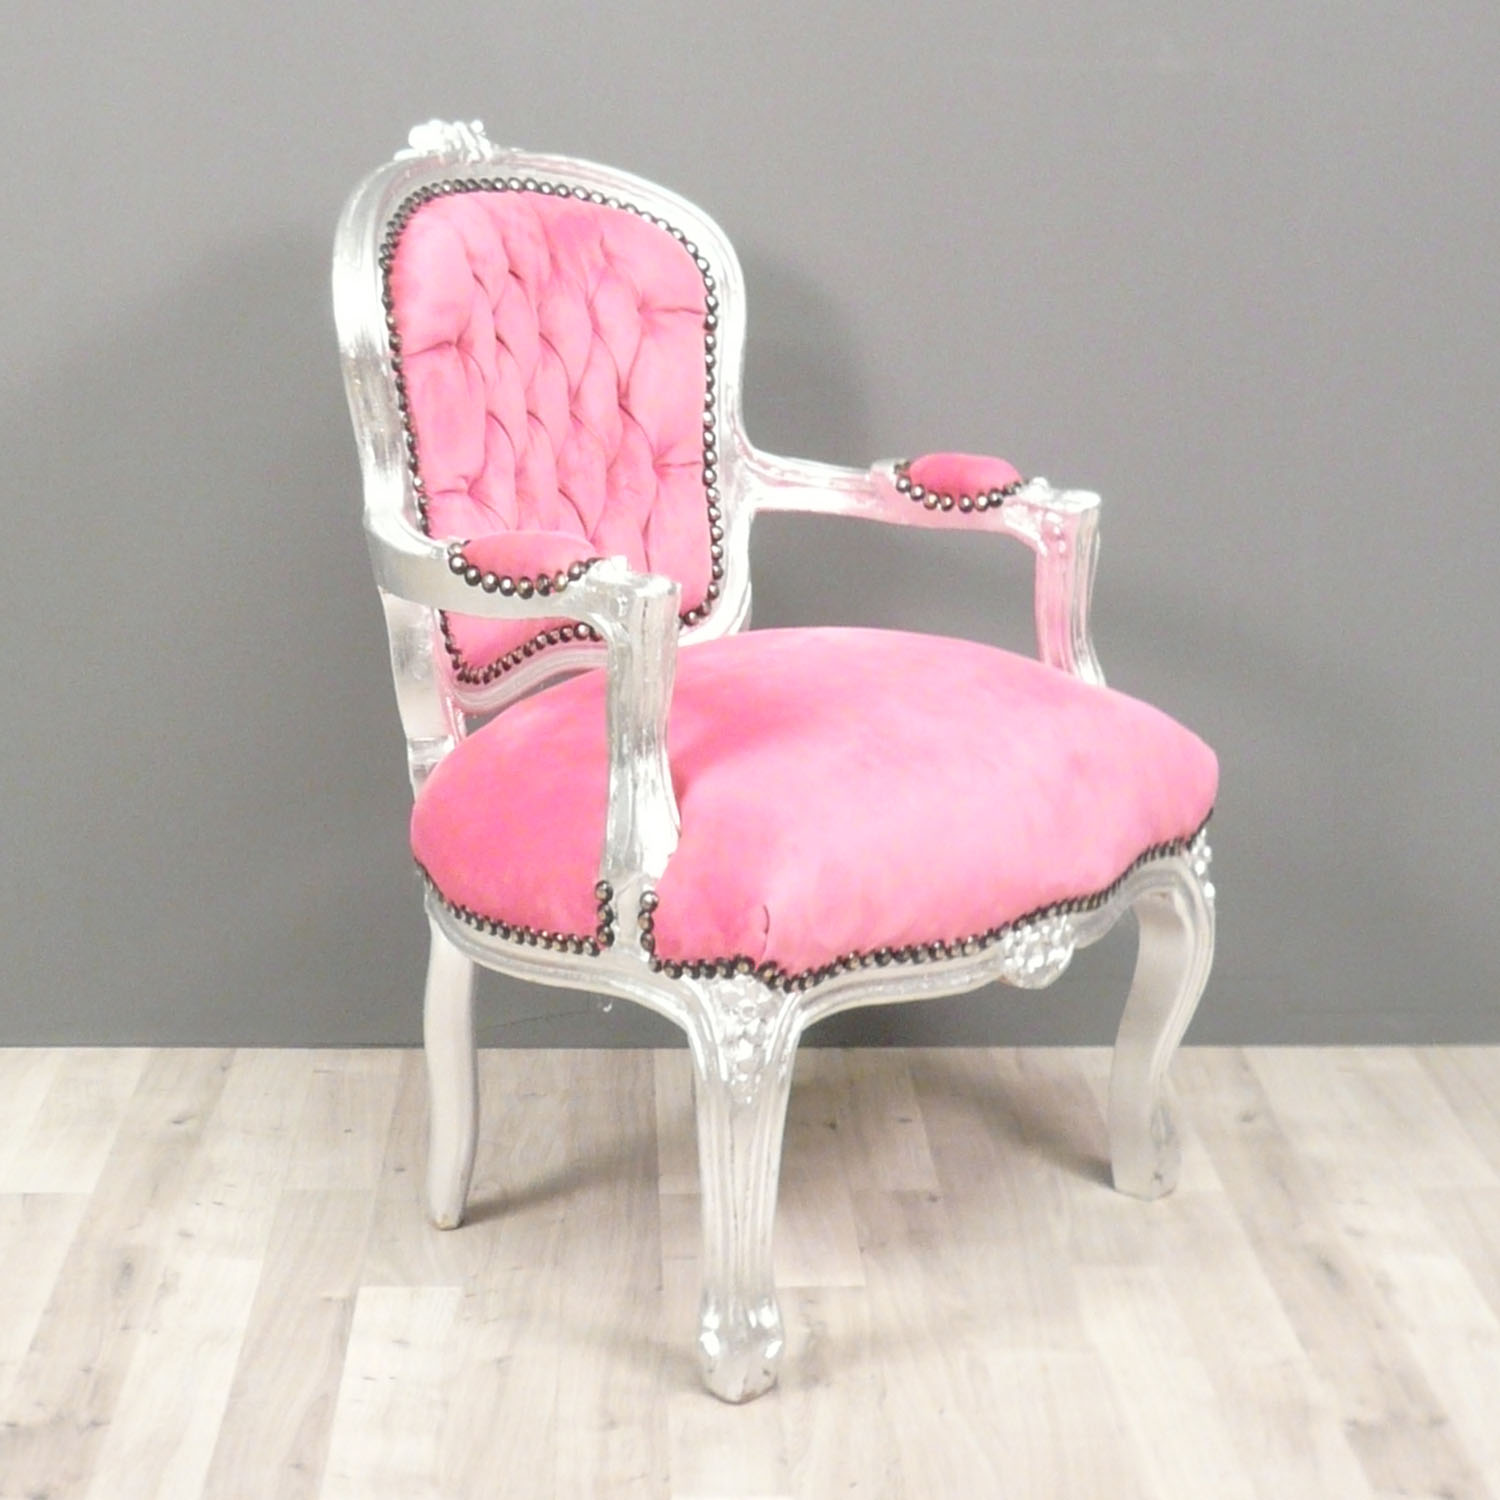 fauteuil louis xv enfant rose fauteuils chaises. Black Bedroom Furniture Sets. Home Design Ideas